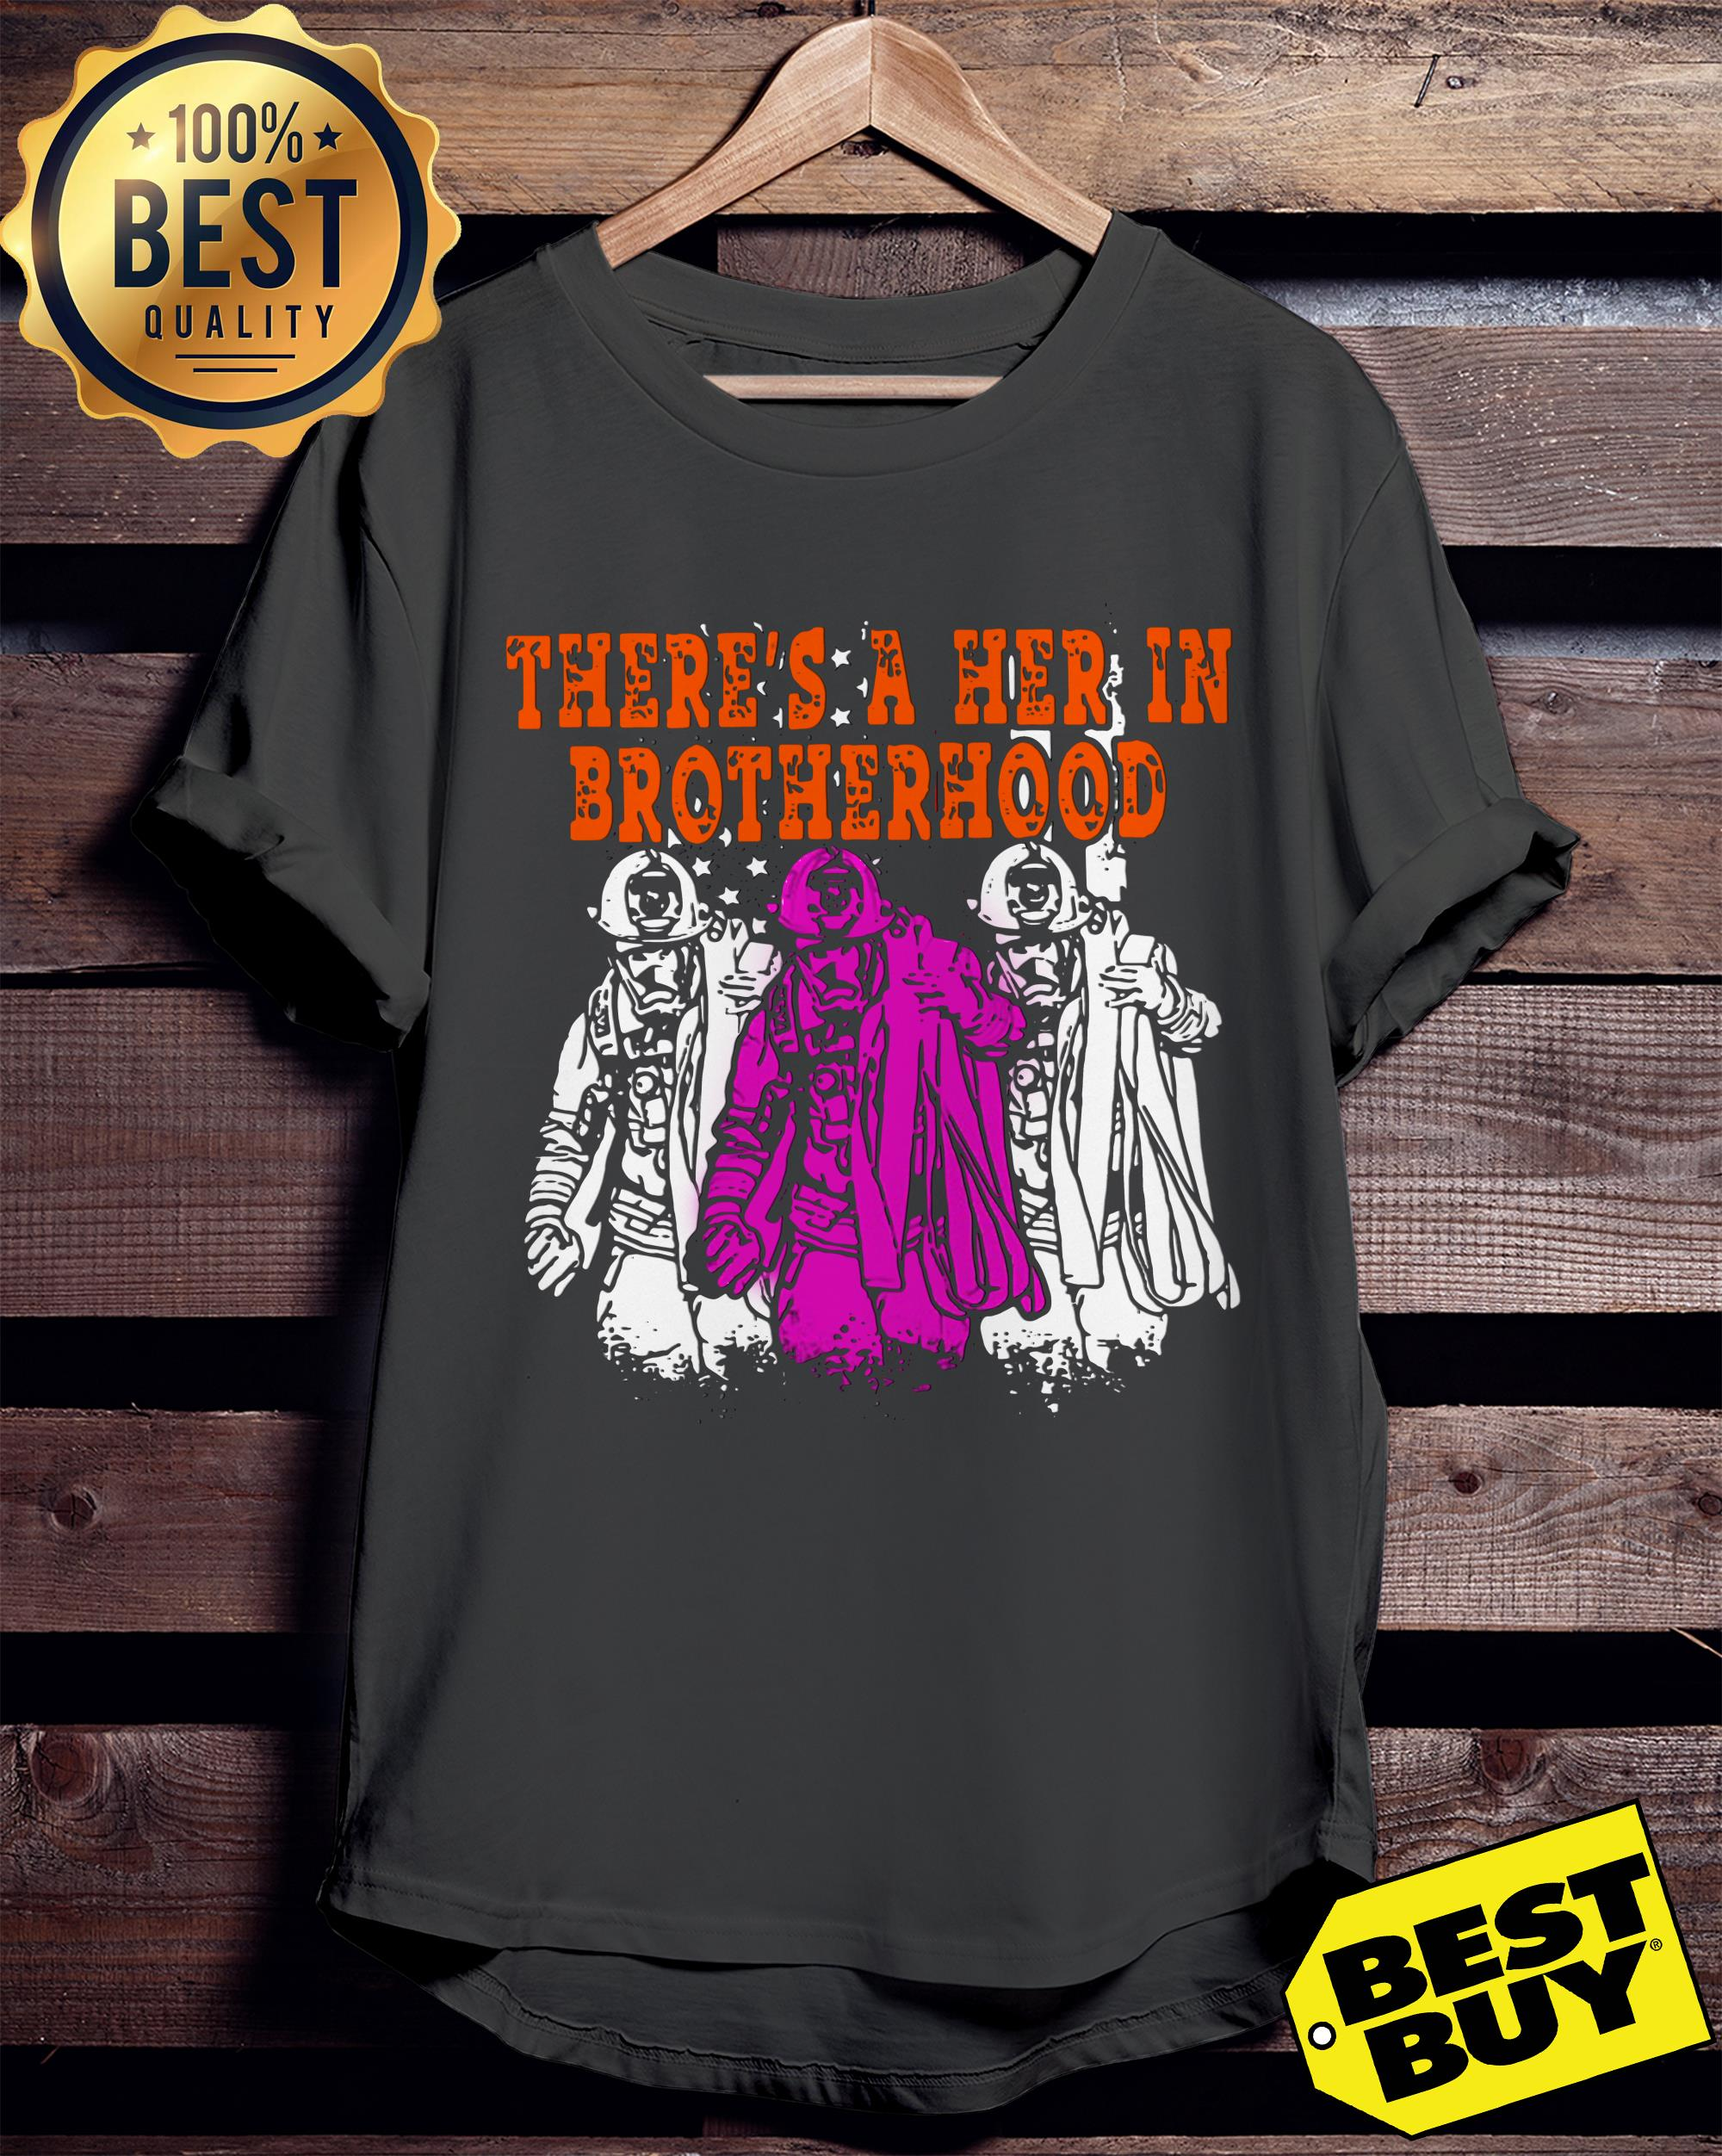 There's a her in brotherhood ladies tee